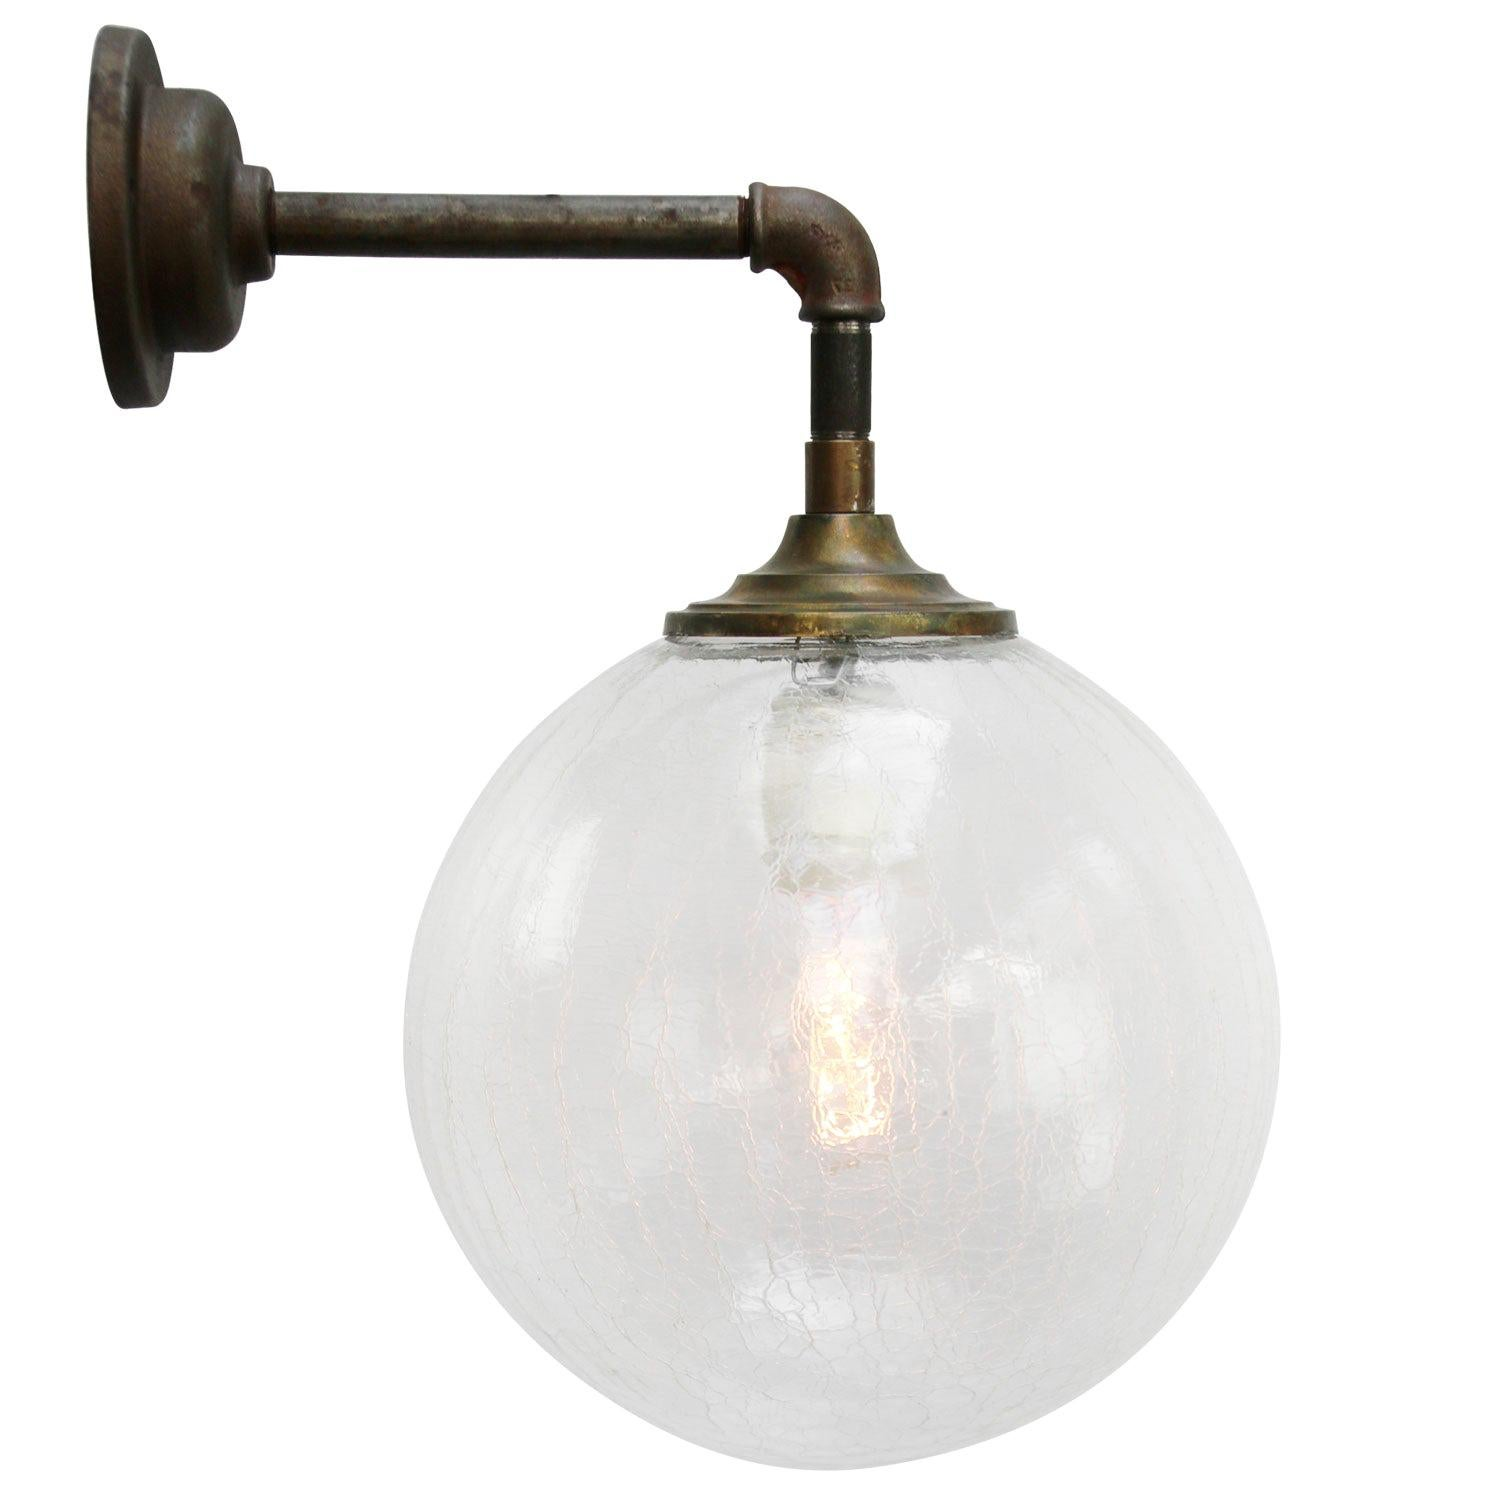 Clear Glass Vintage Industrial Brass Cast Iron Scones Wall Lights